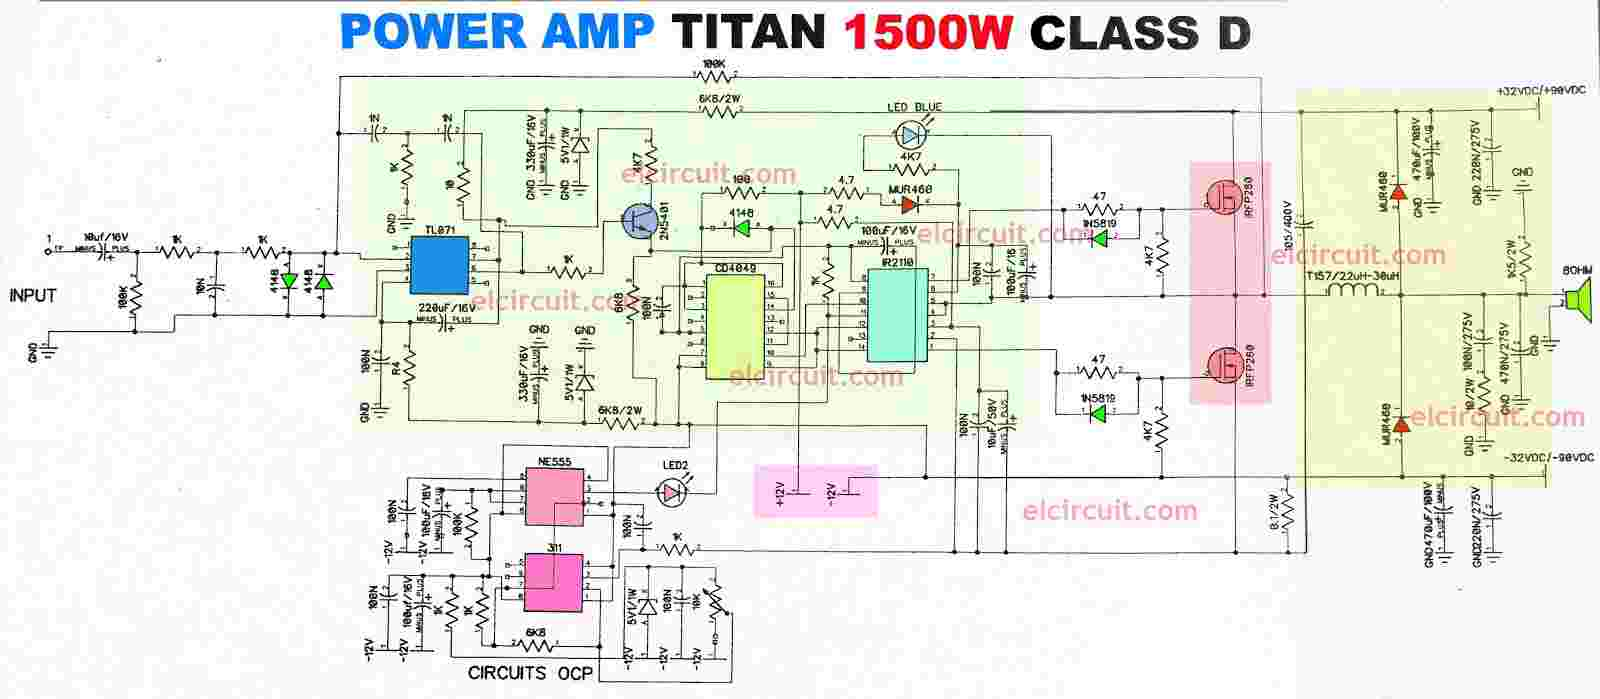 high power amplifier circuit diagram class d titan [ 1600 x 699 Pixel ]